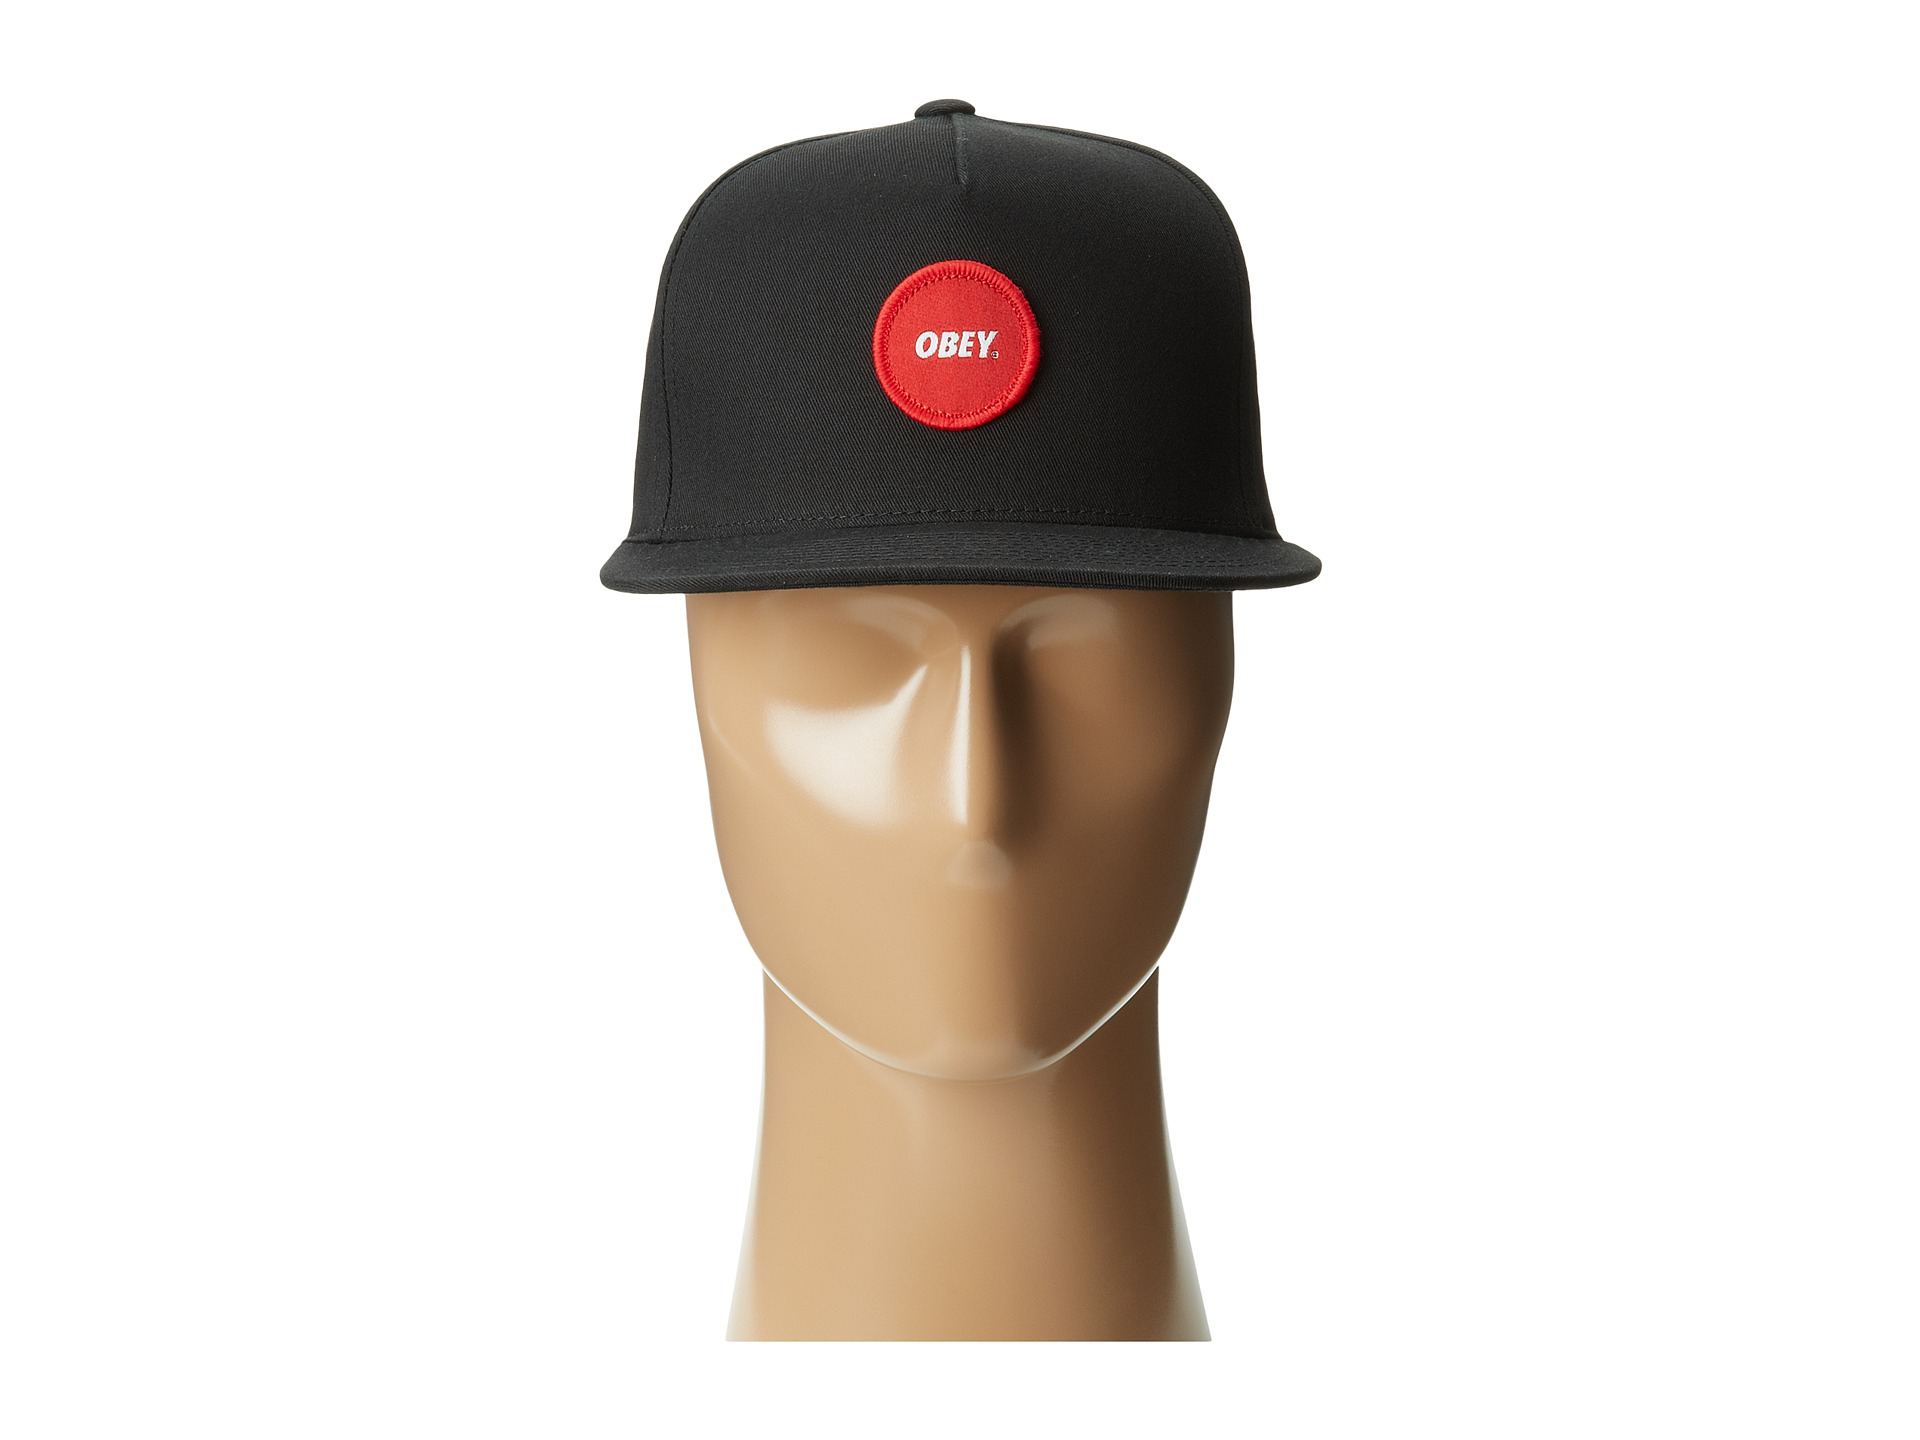 Lyst - Obey Circle Patch Ii Snapback Hat in Black for Men 9d993867d6c0